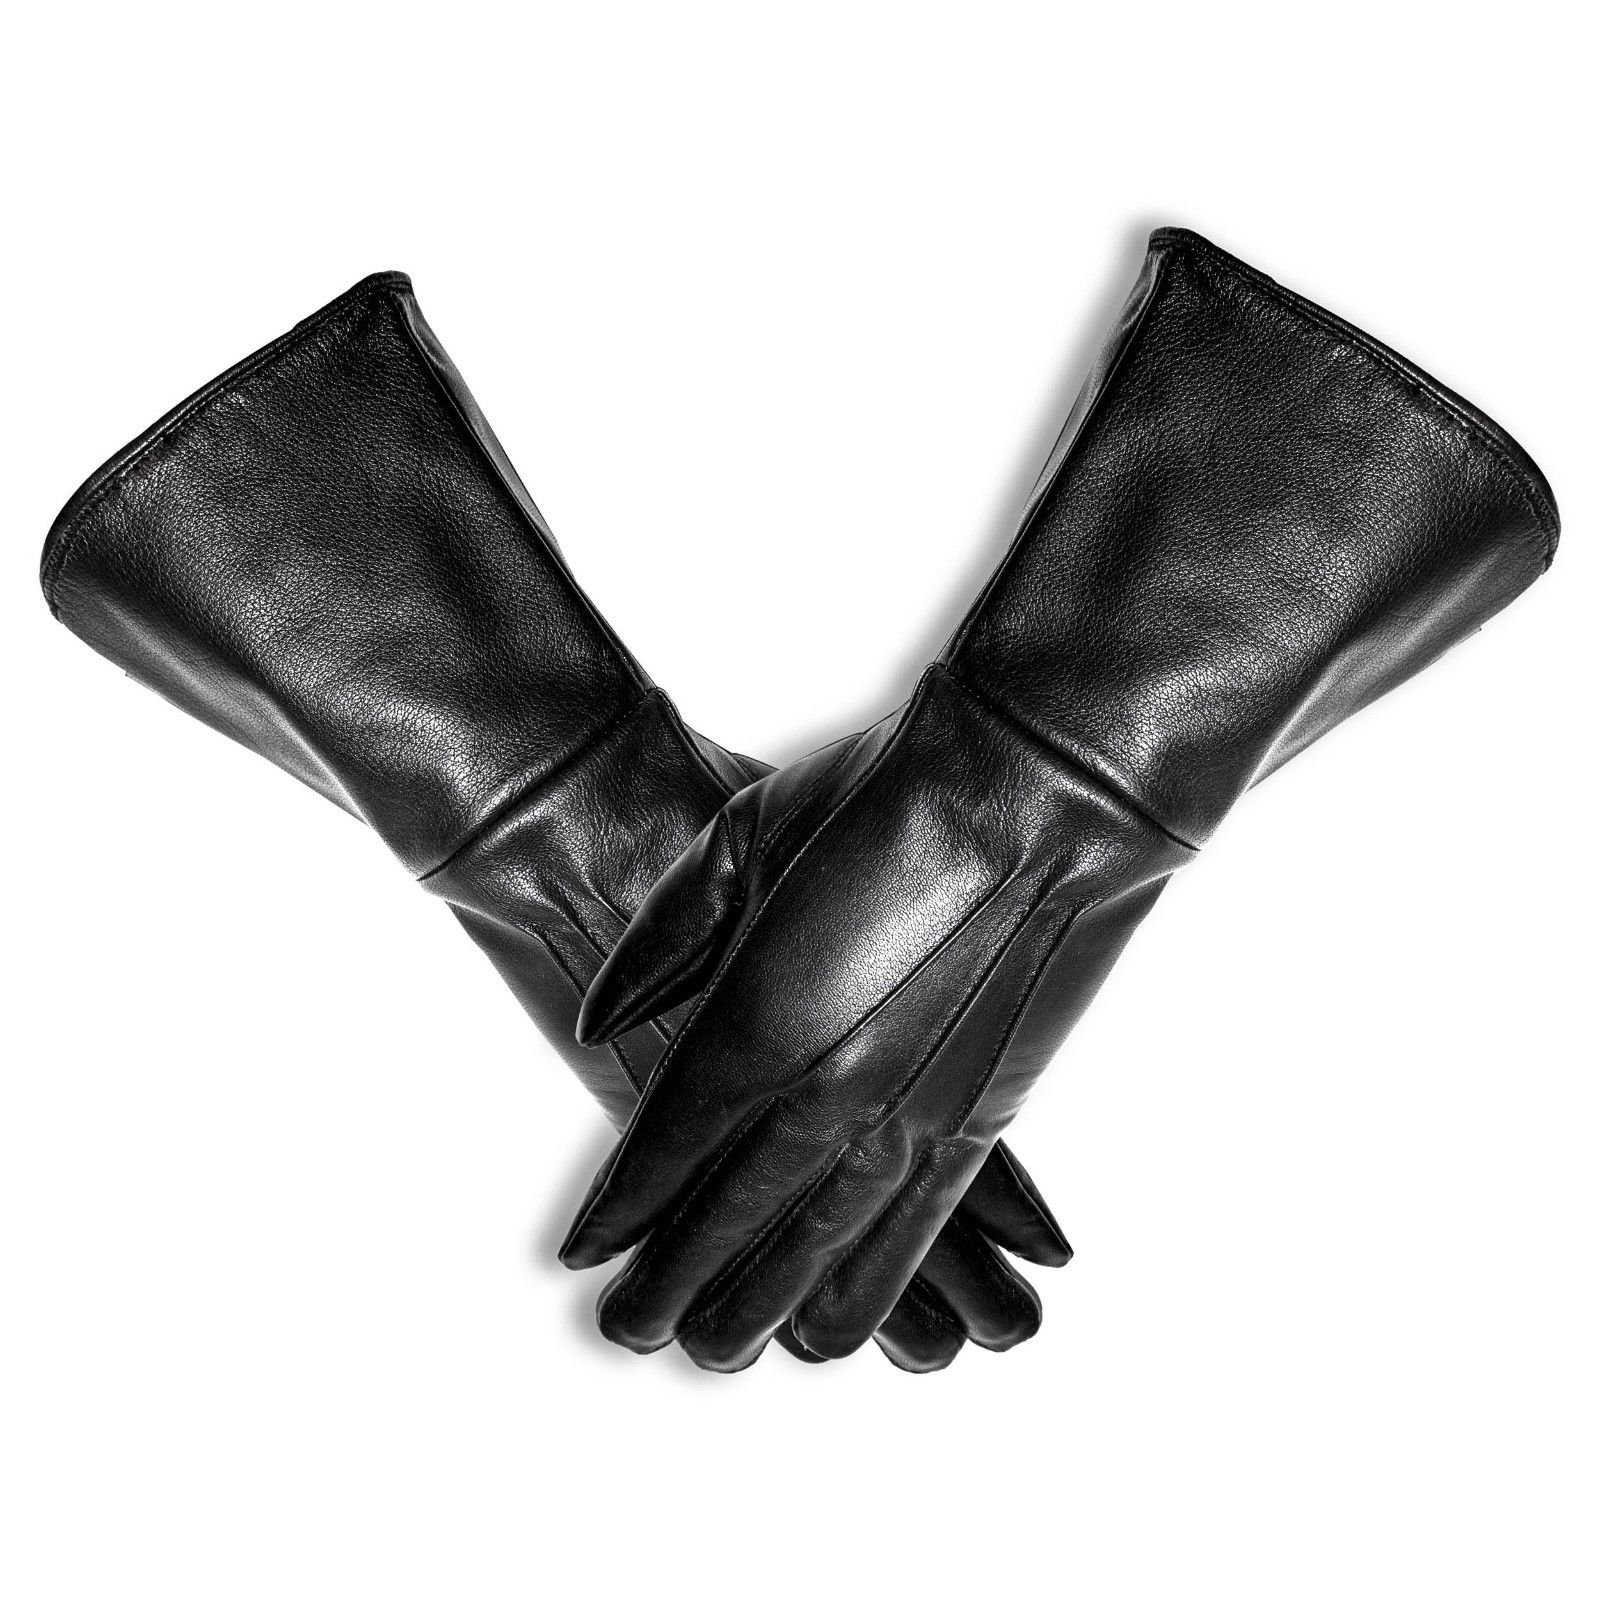 Mens Unlined Leather Gauntlet Motorcycle Gloves (Medium) by Gloves 007